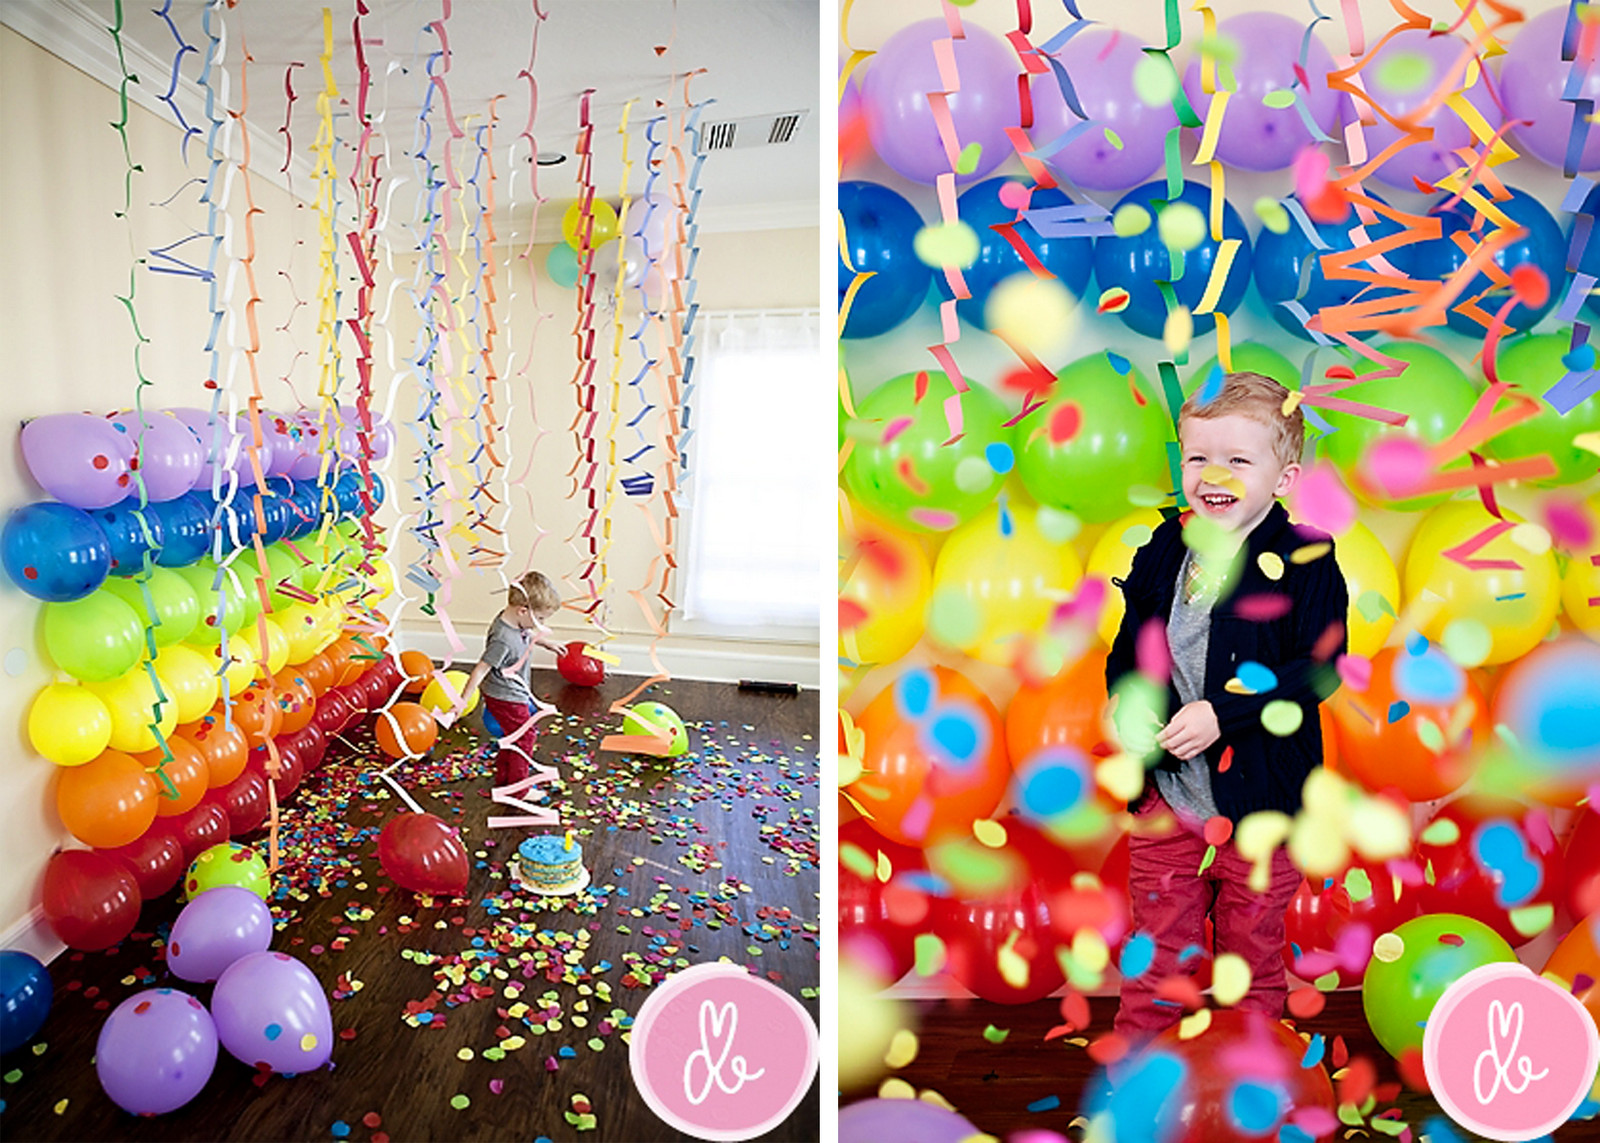 Best ideas about Birthday Decorating Ideas . Save or Pin Birthday Party Decoration Ideas Now.